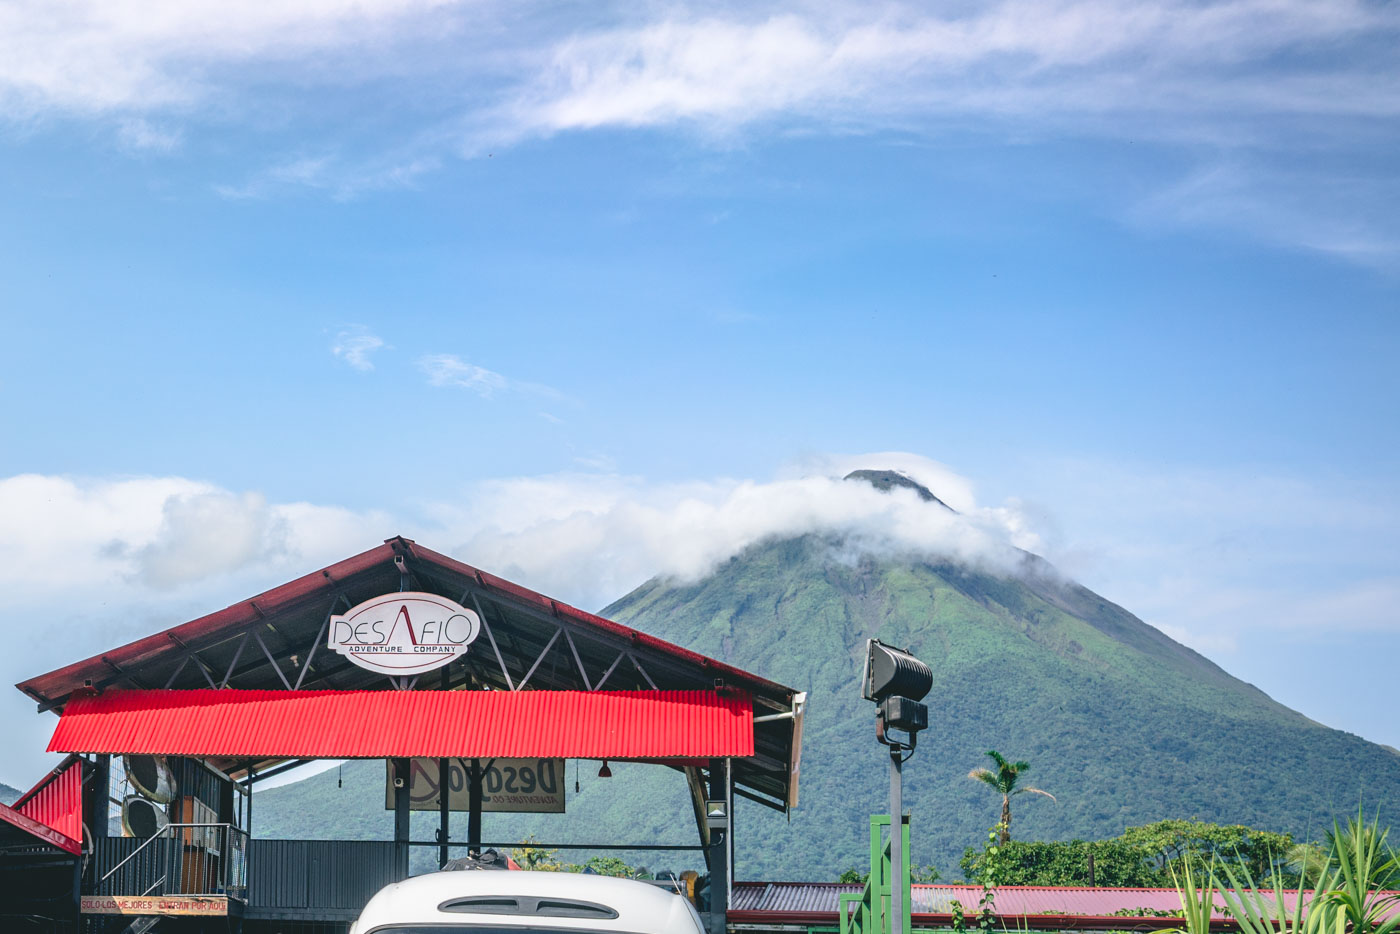 Arenal Costa Rica: Desafio Adventures office in La Fortuna